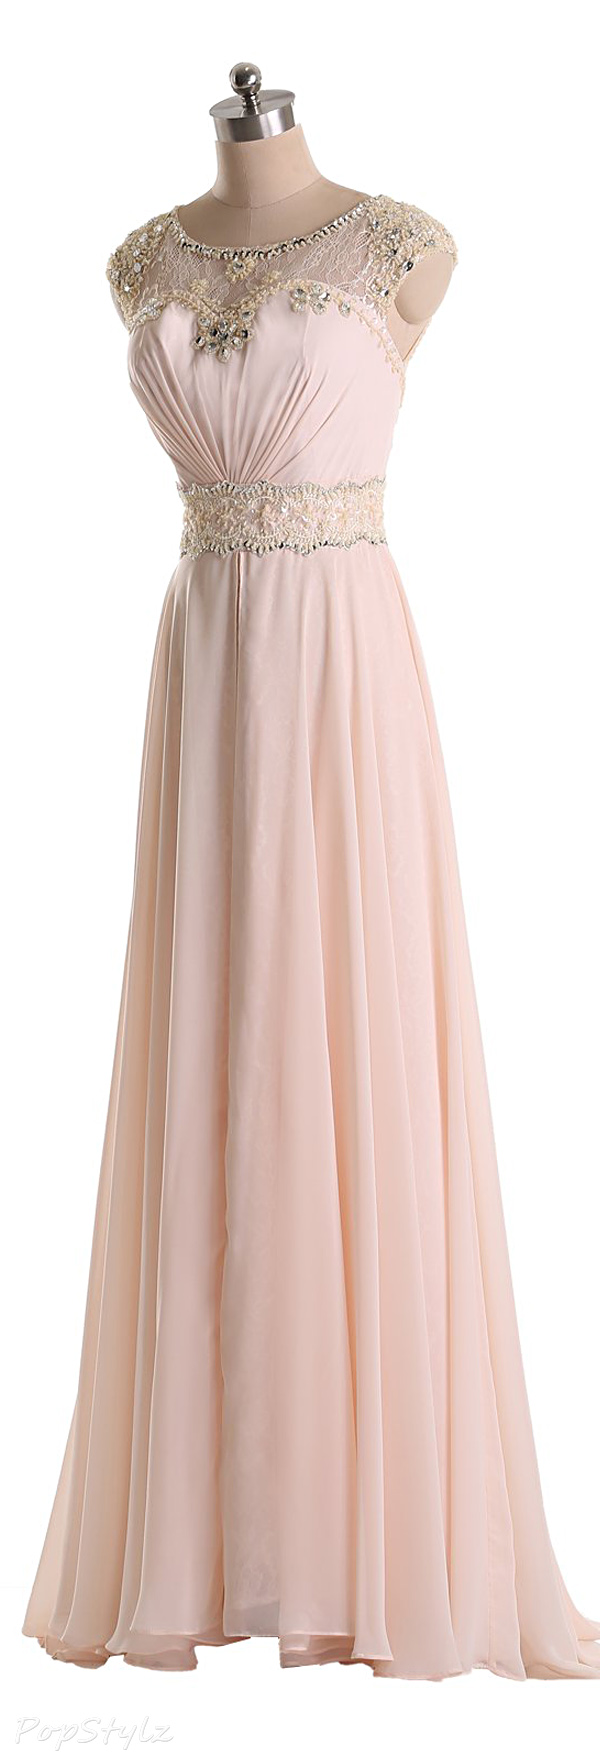 Sunvary Chiffon Jewels & Lace Evening Gown